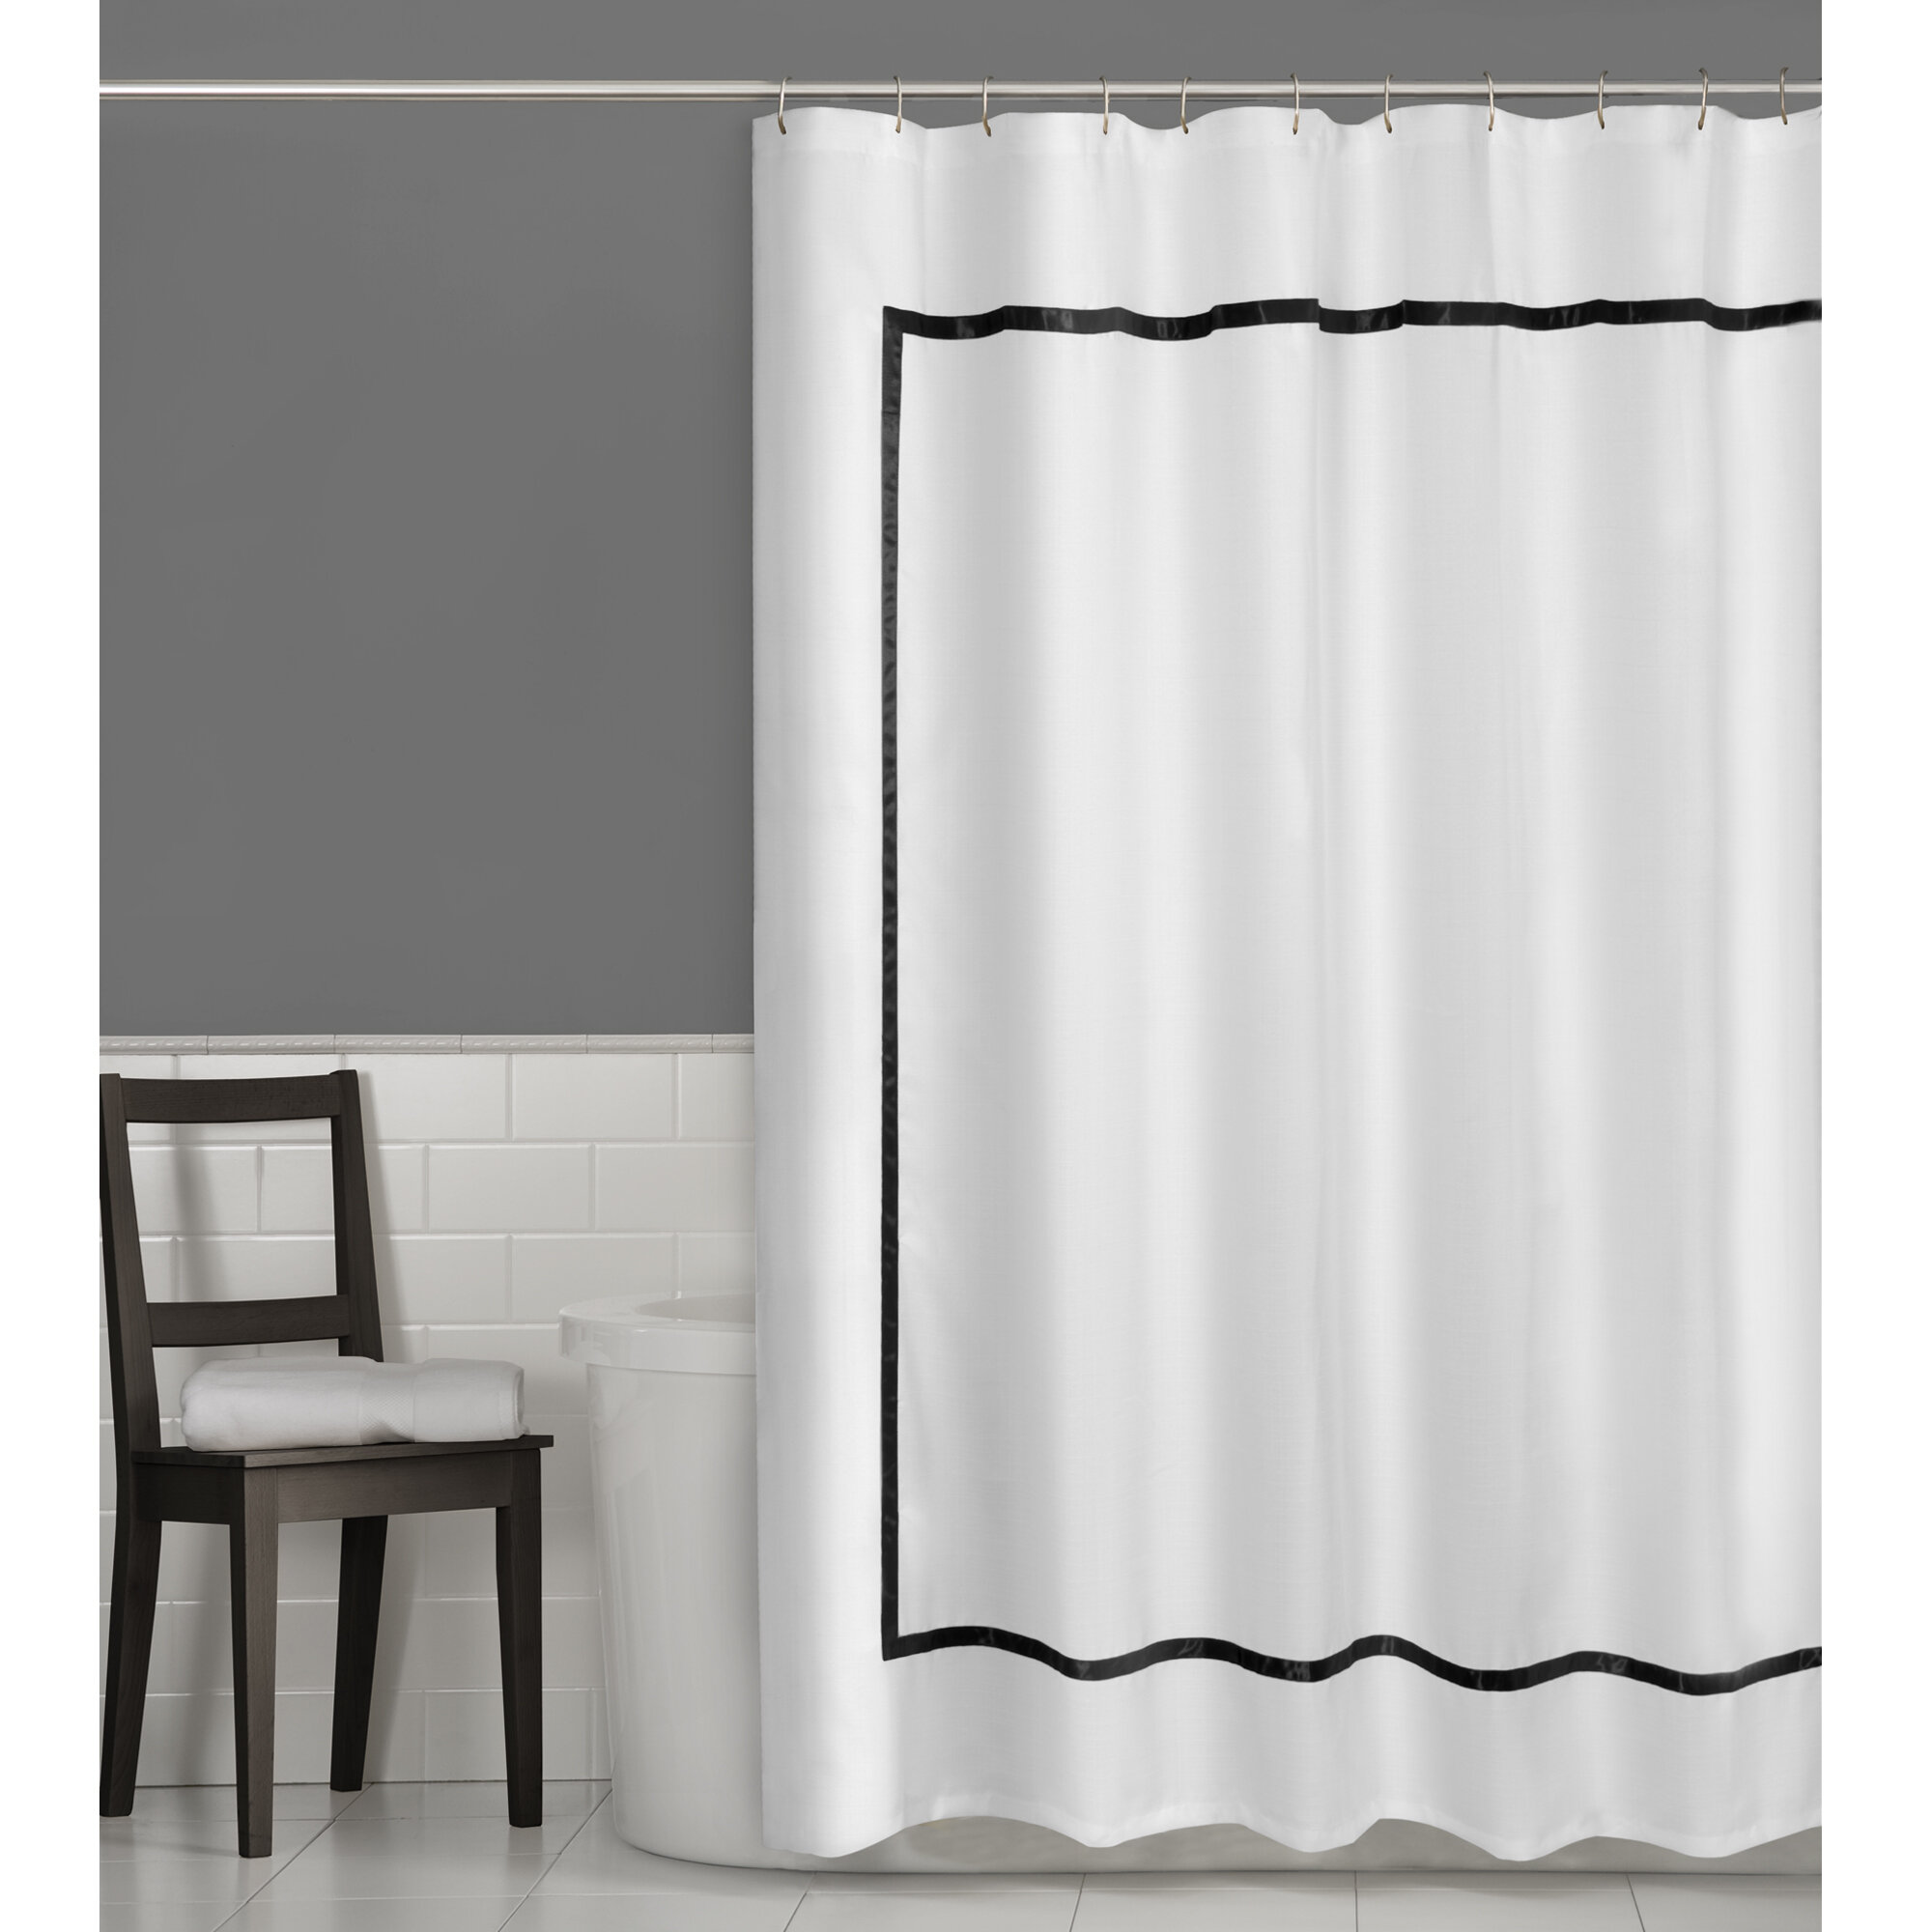 Maytex Hotel Border Shower Curtain U0026 Reviews | Wayfair